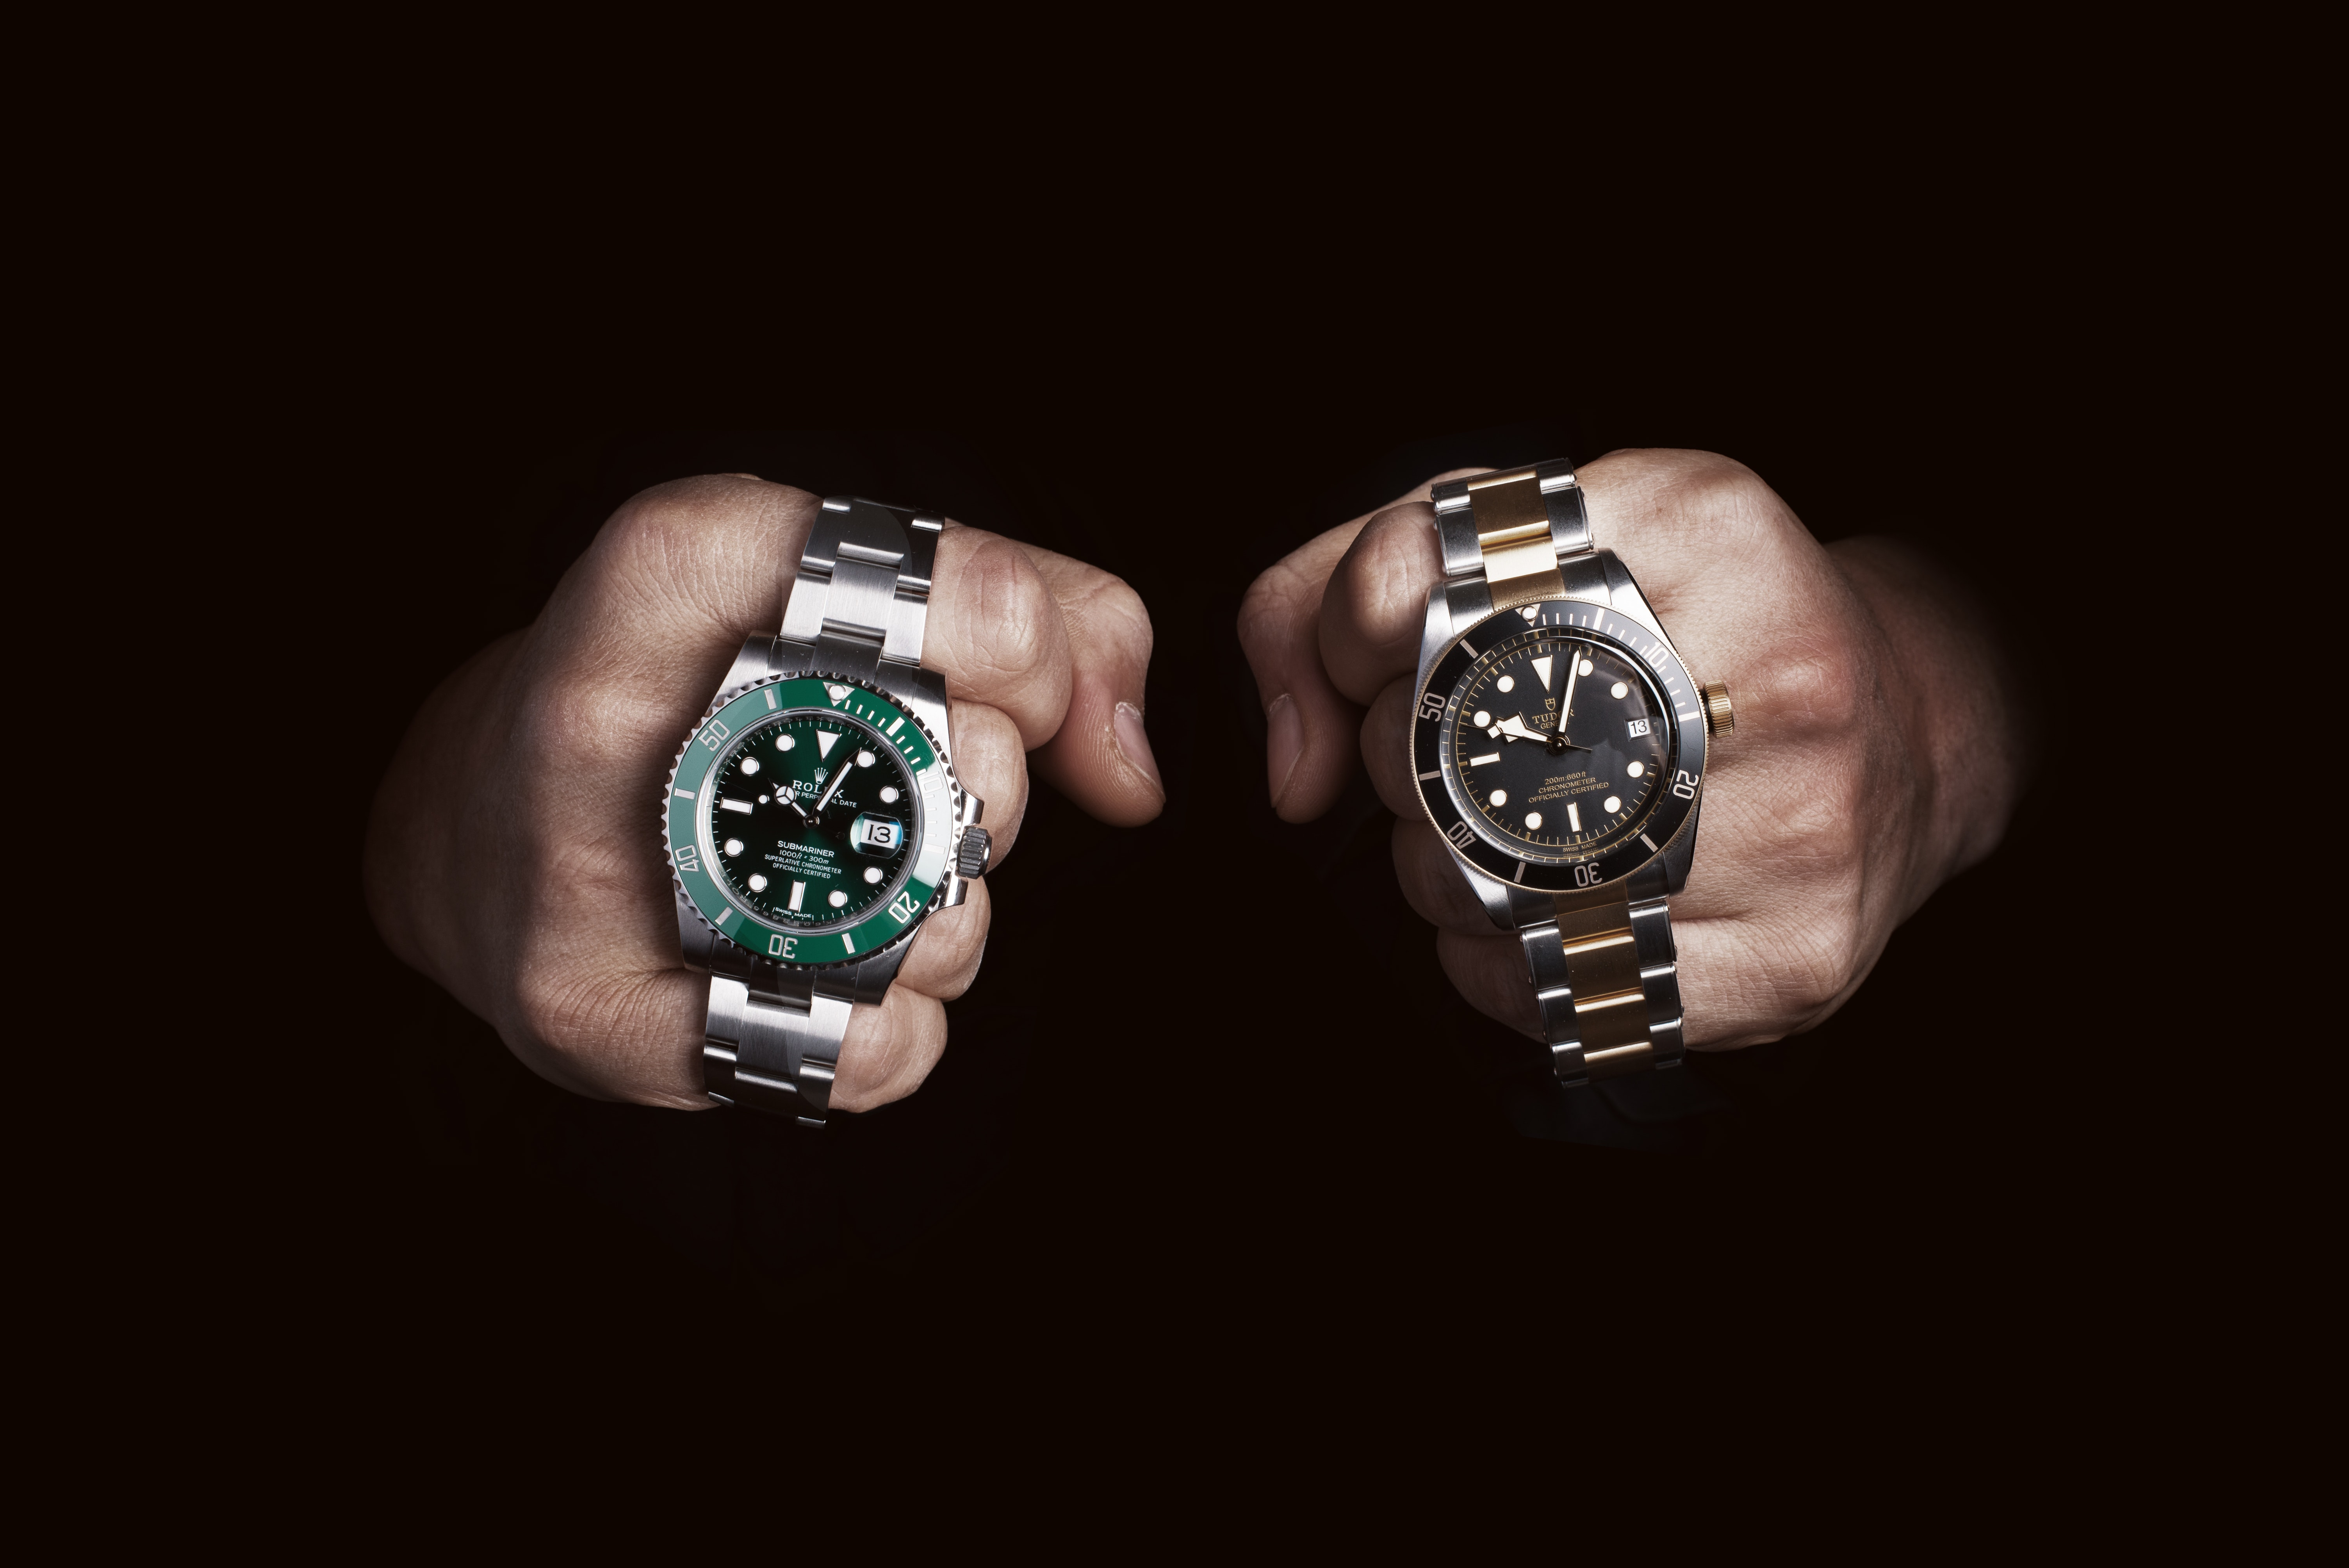 Tudor vs Rolex - How to find the right brand for you